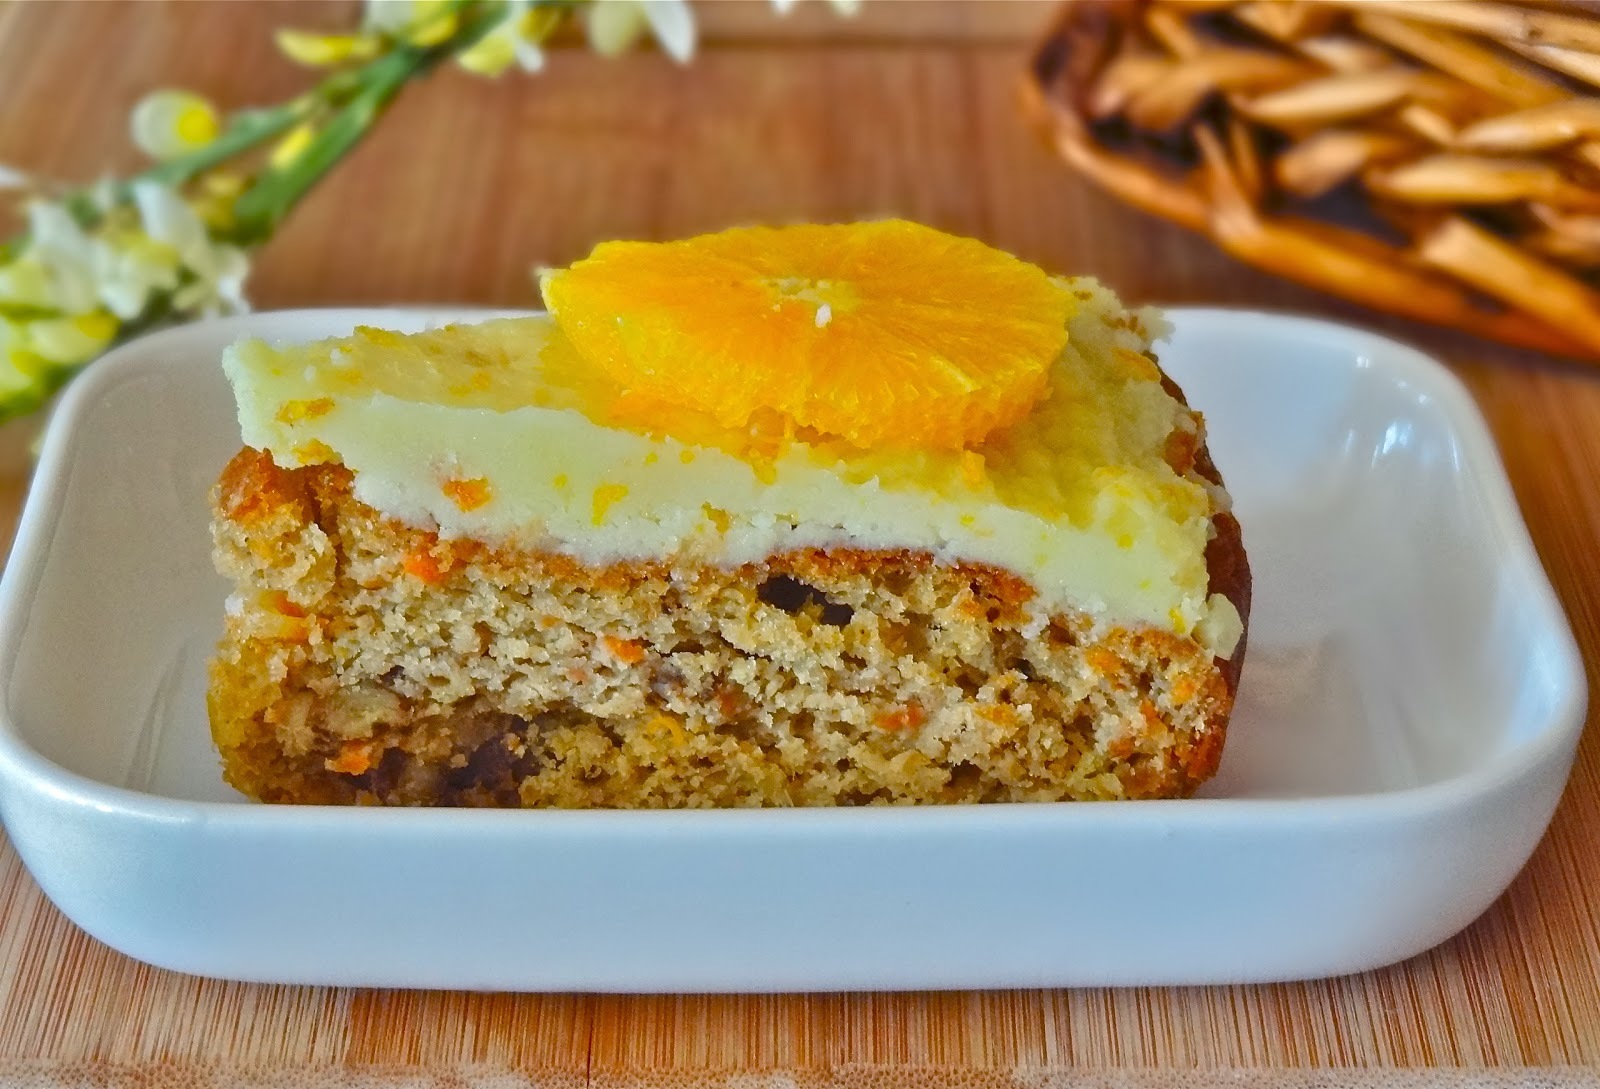 Mango carrot cake with orange butter frosting